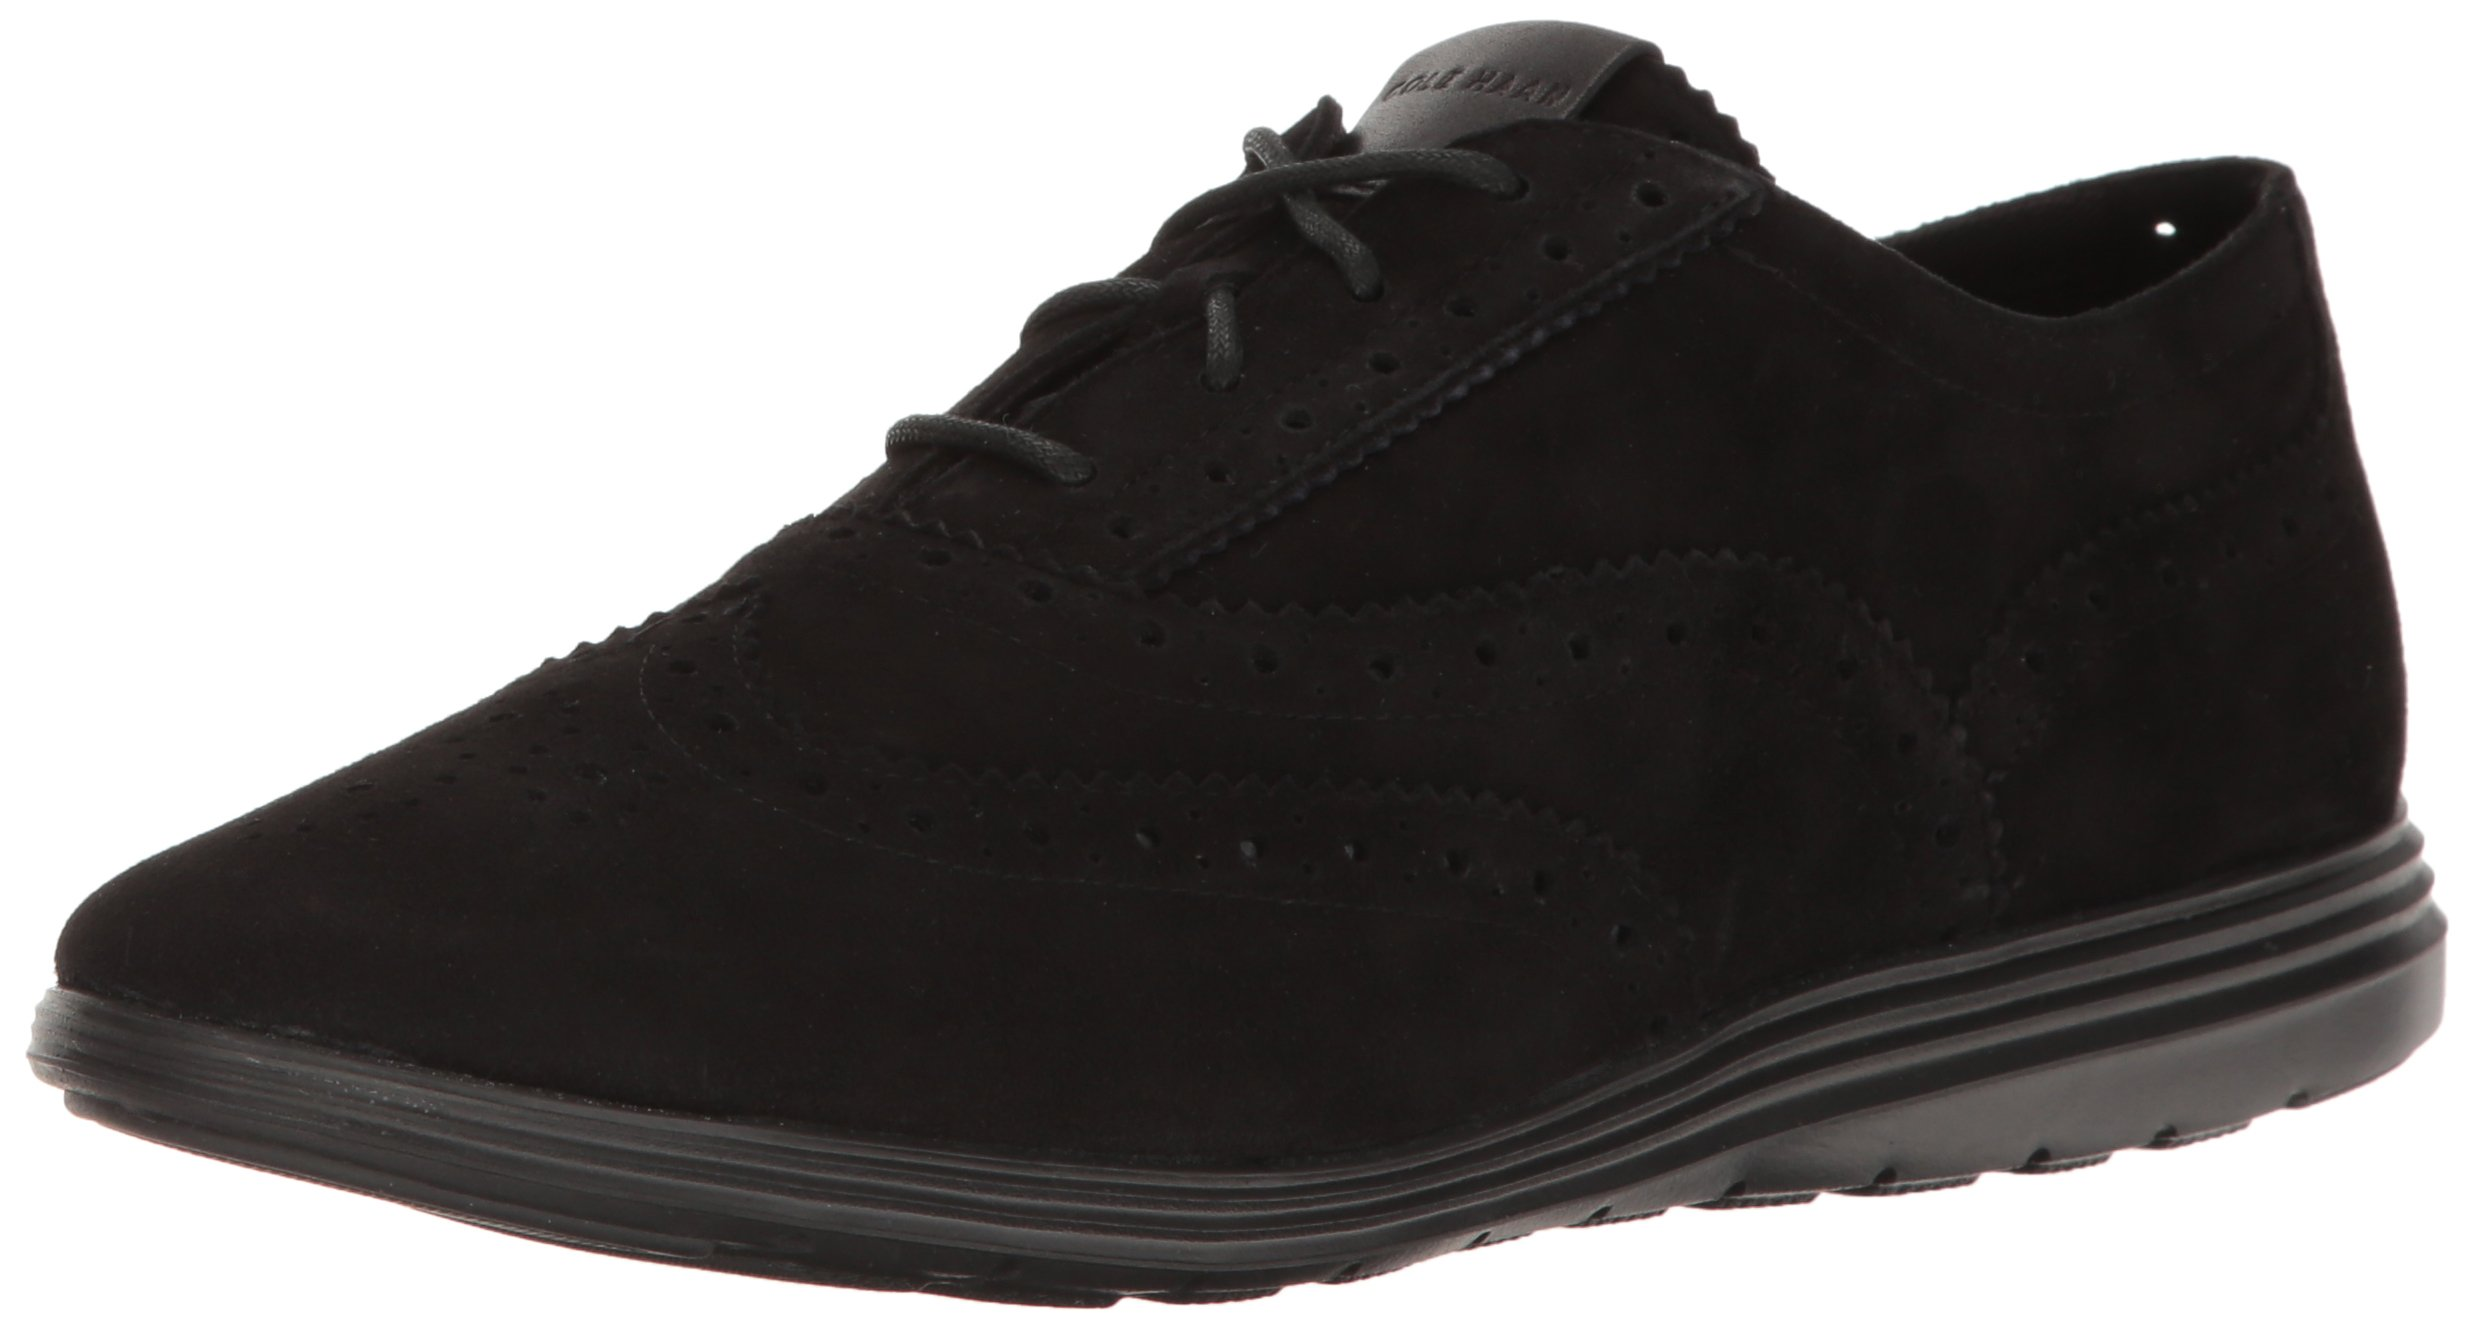 Cole Haan Women's Grand Tour Oxford, Black/Black, 7 B US